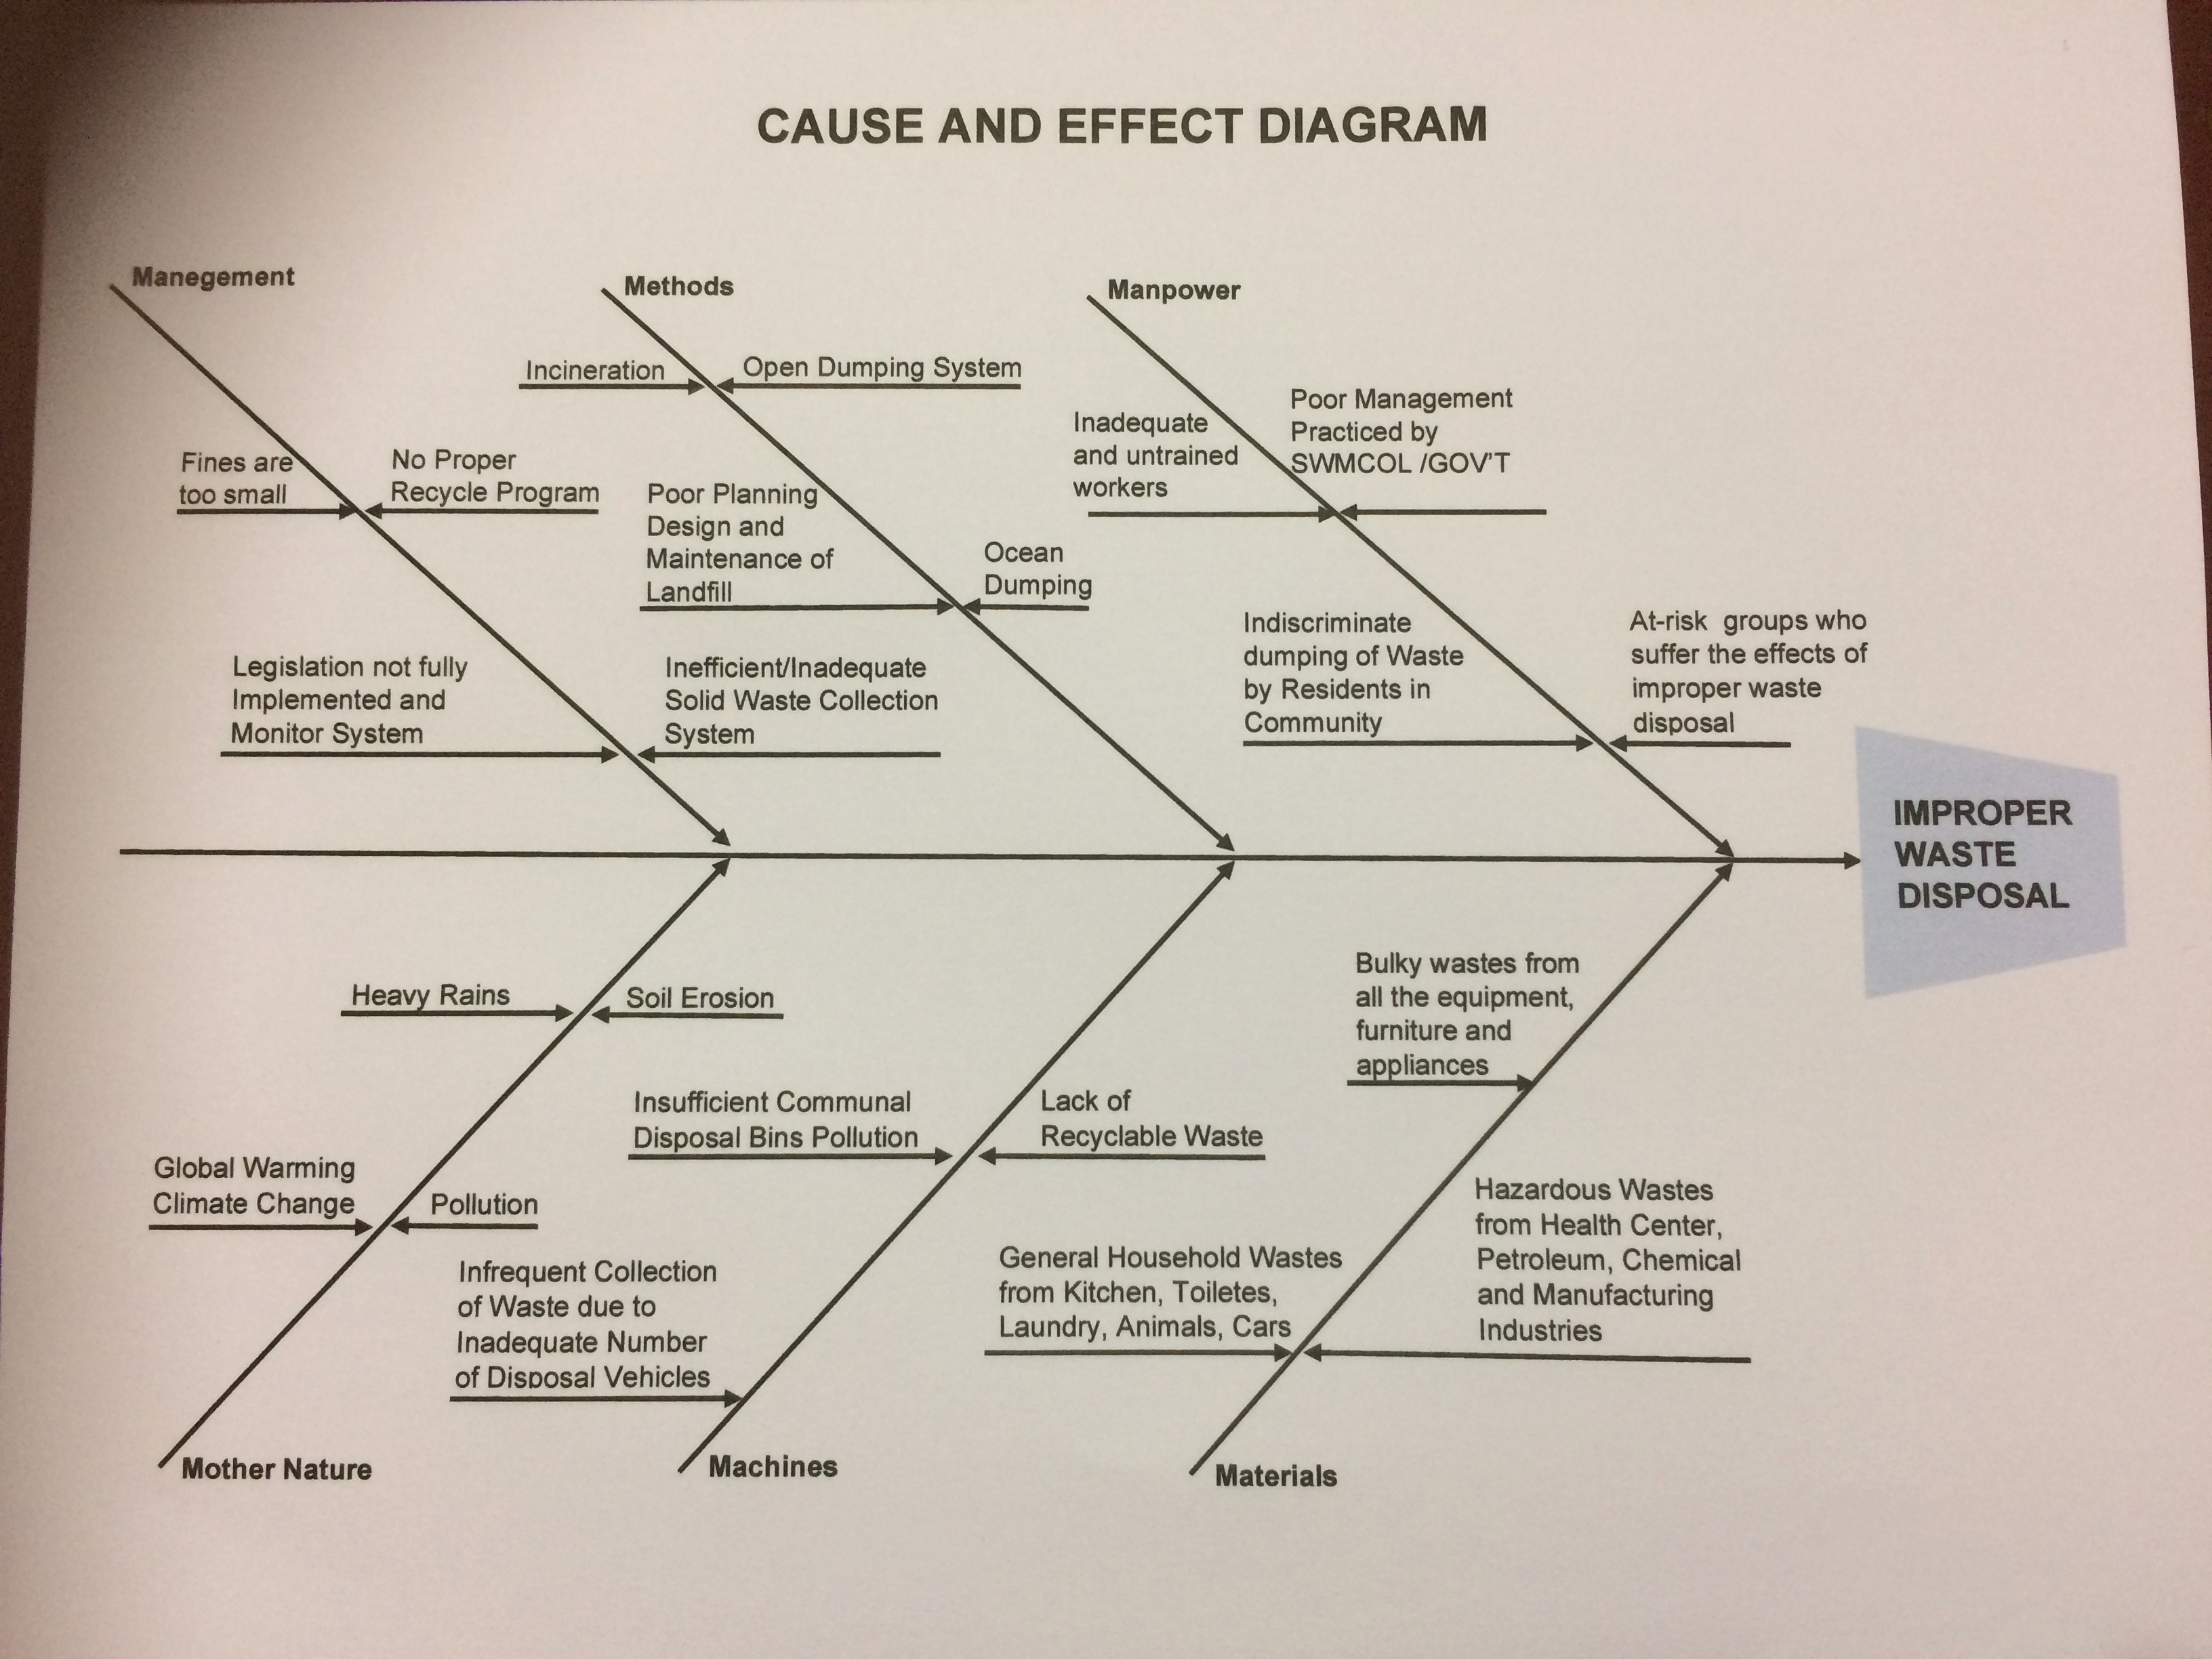 the cause and effect diagram liver panel improper waste disposal strat matters